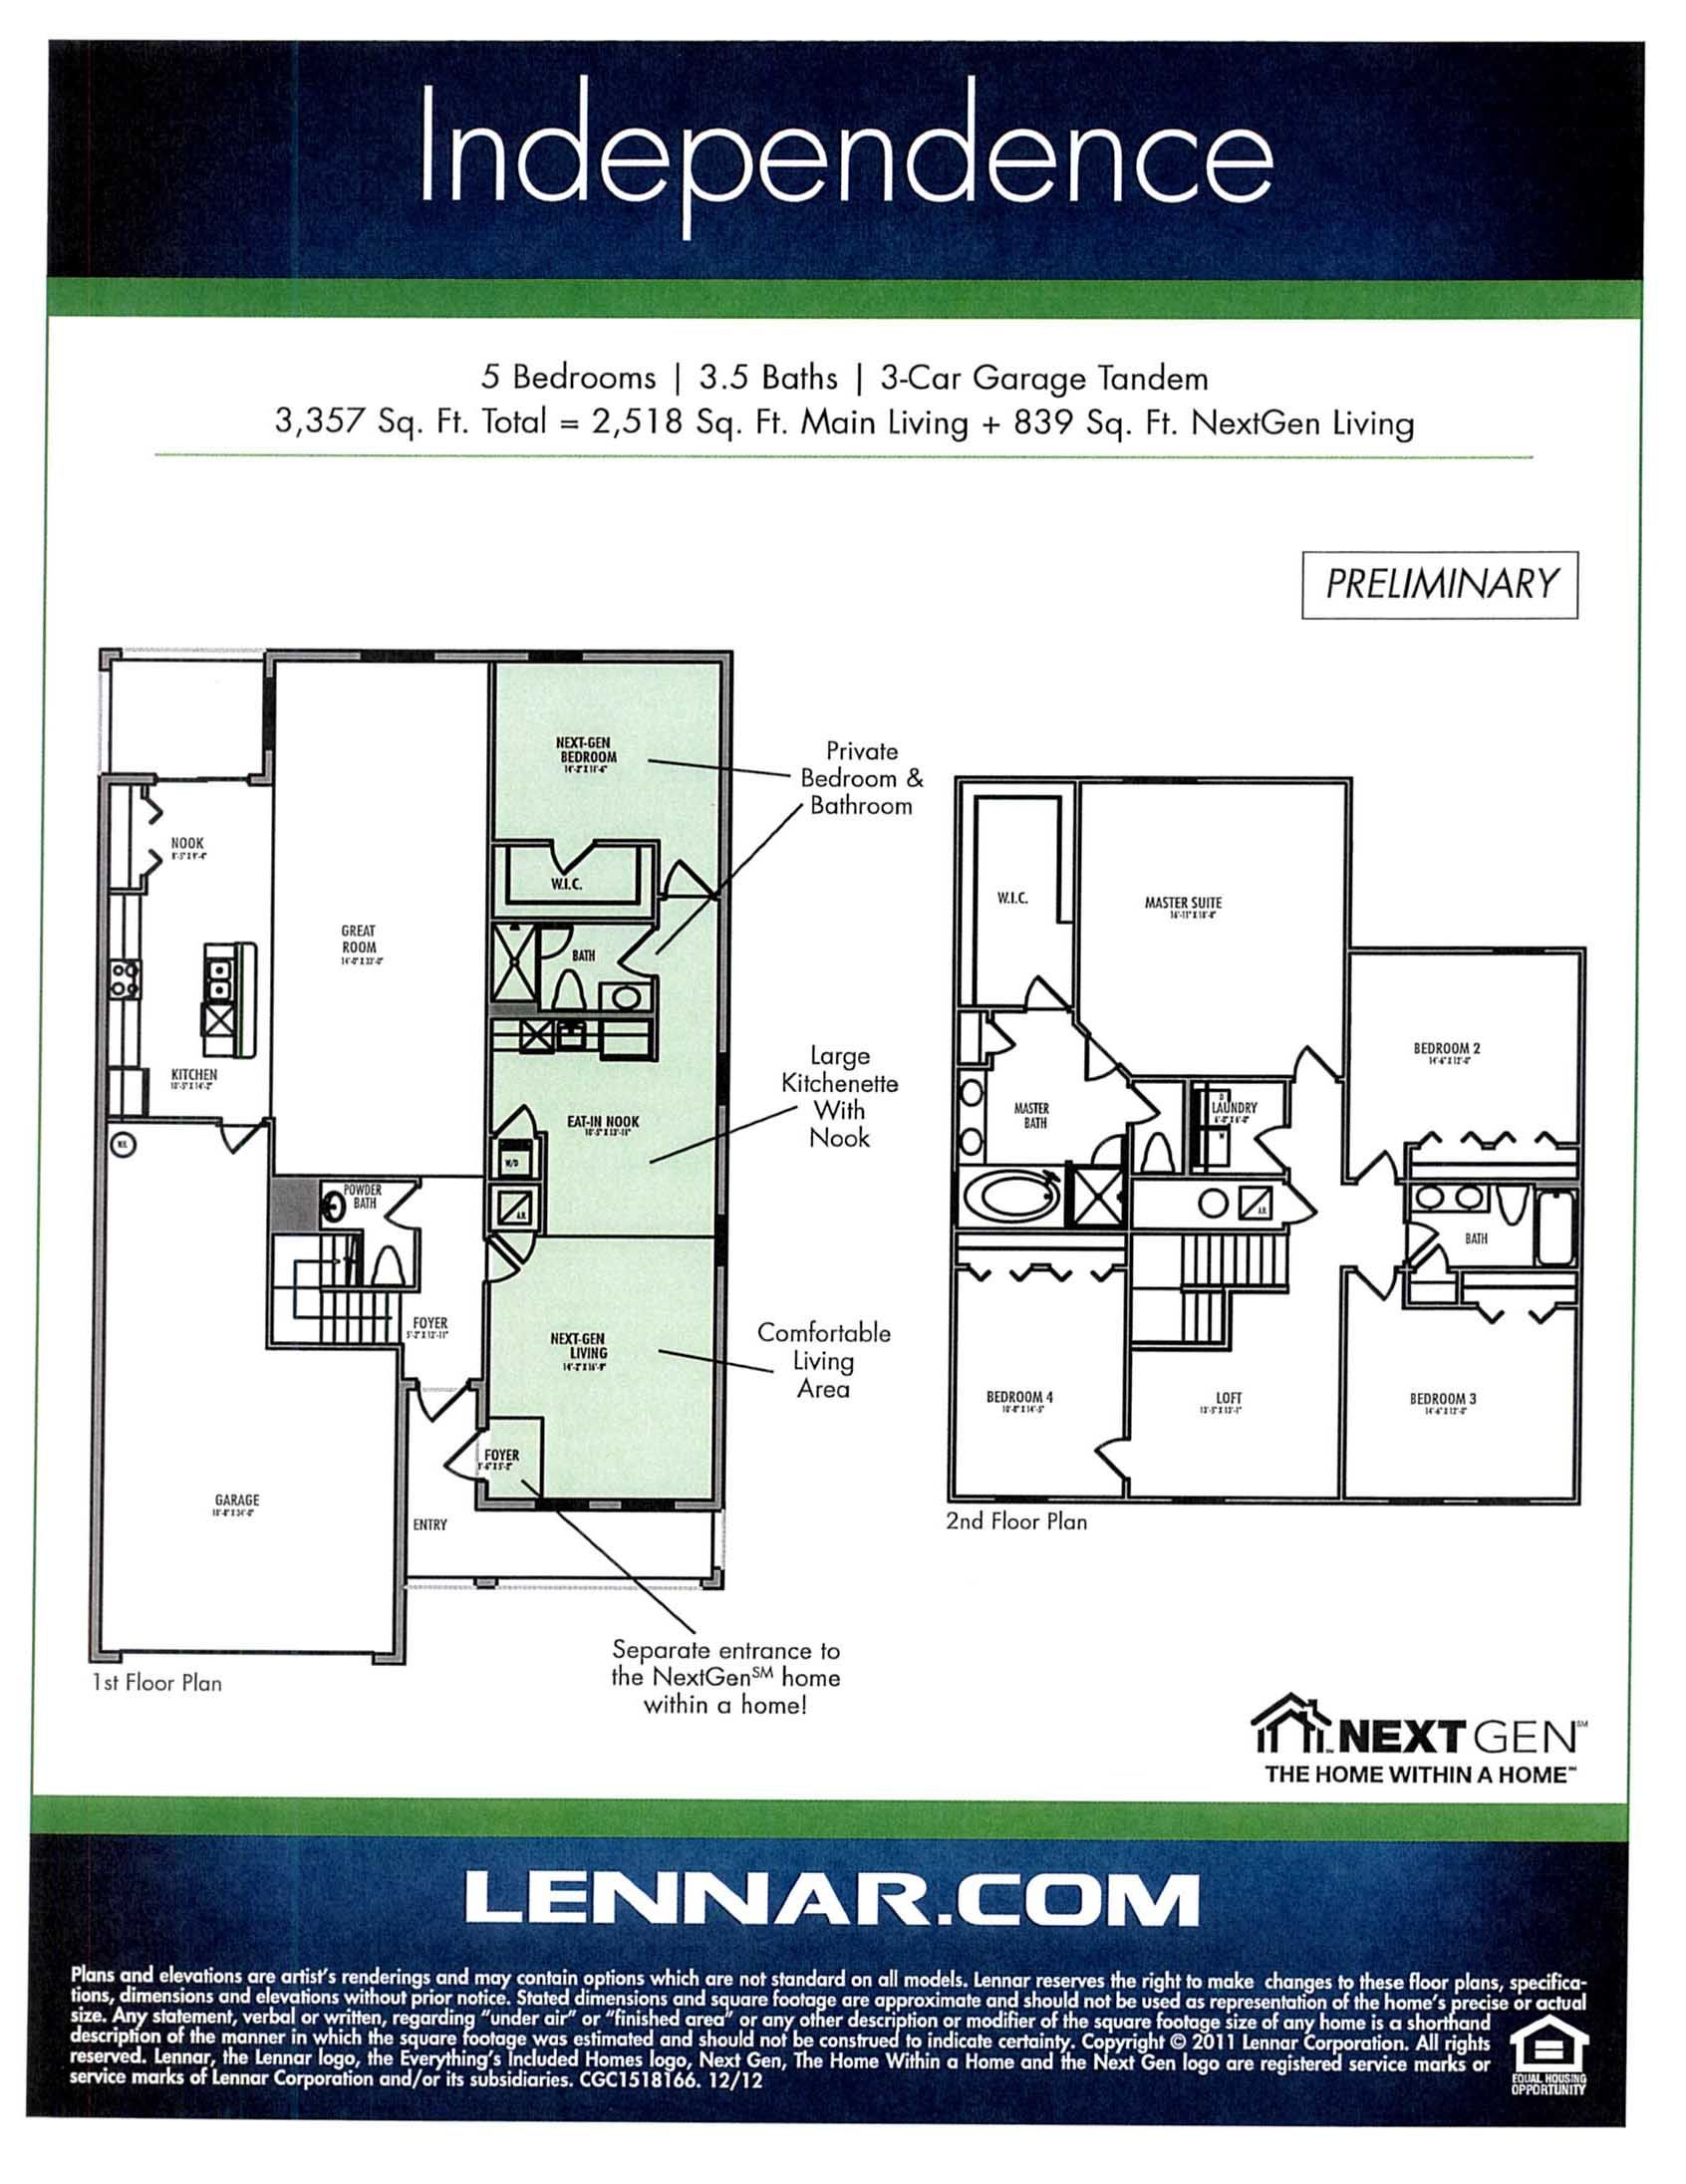 lennar homes independence floorplan next gen home within a home